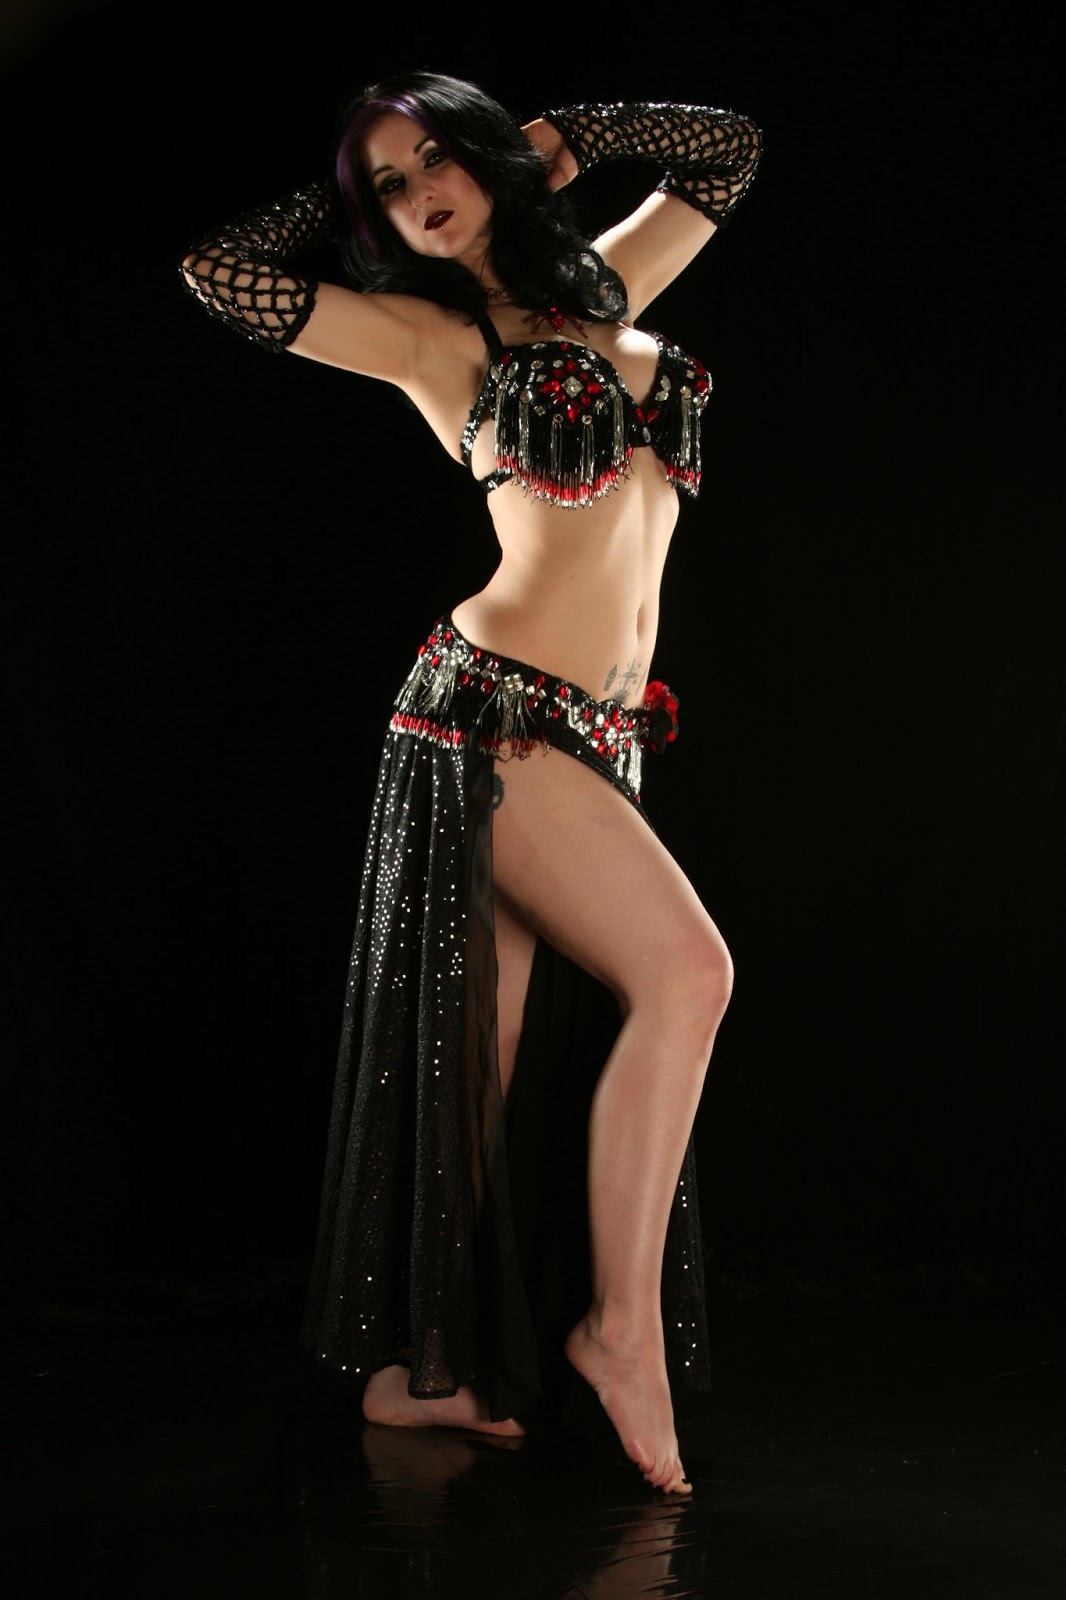 Hot Belly Dance Photos on Aztec Dancer In Mexico